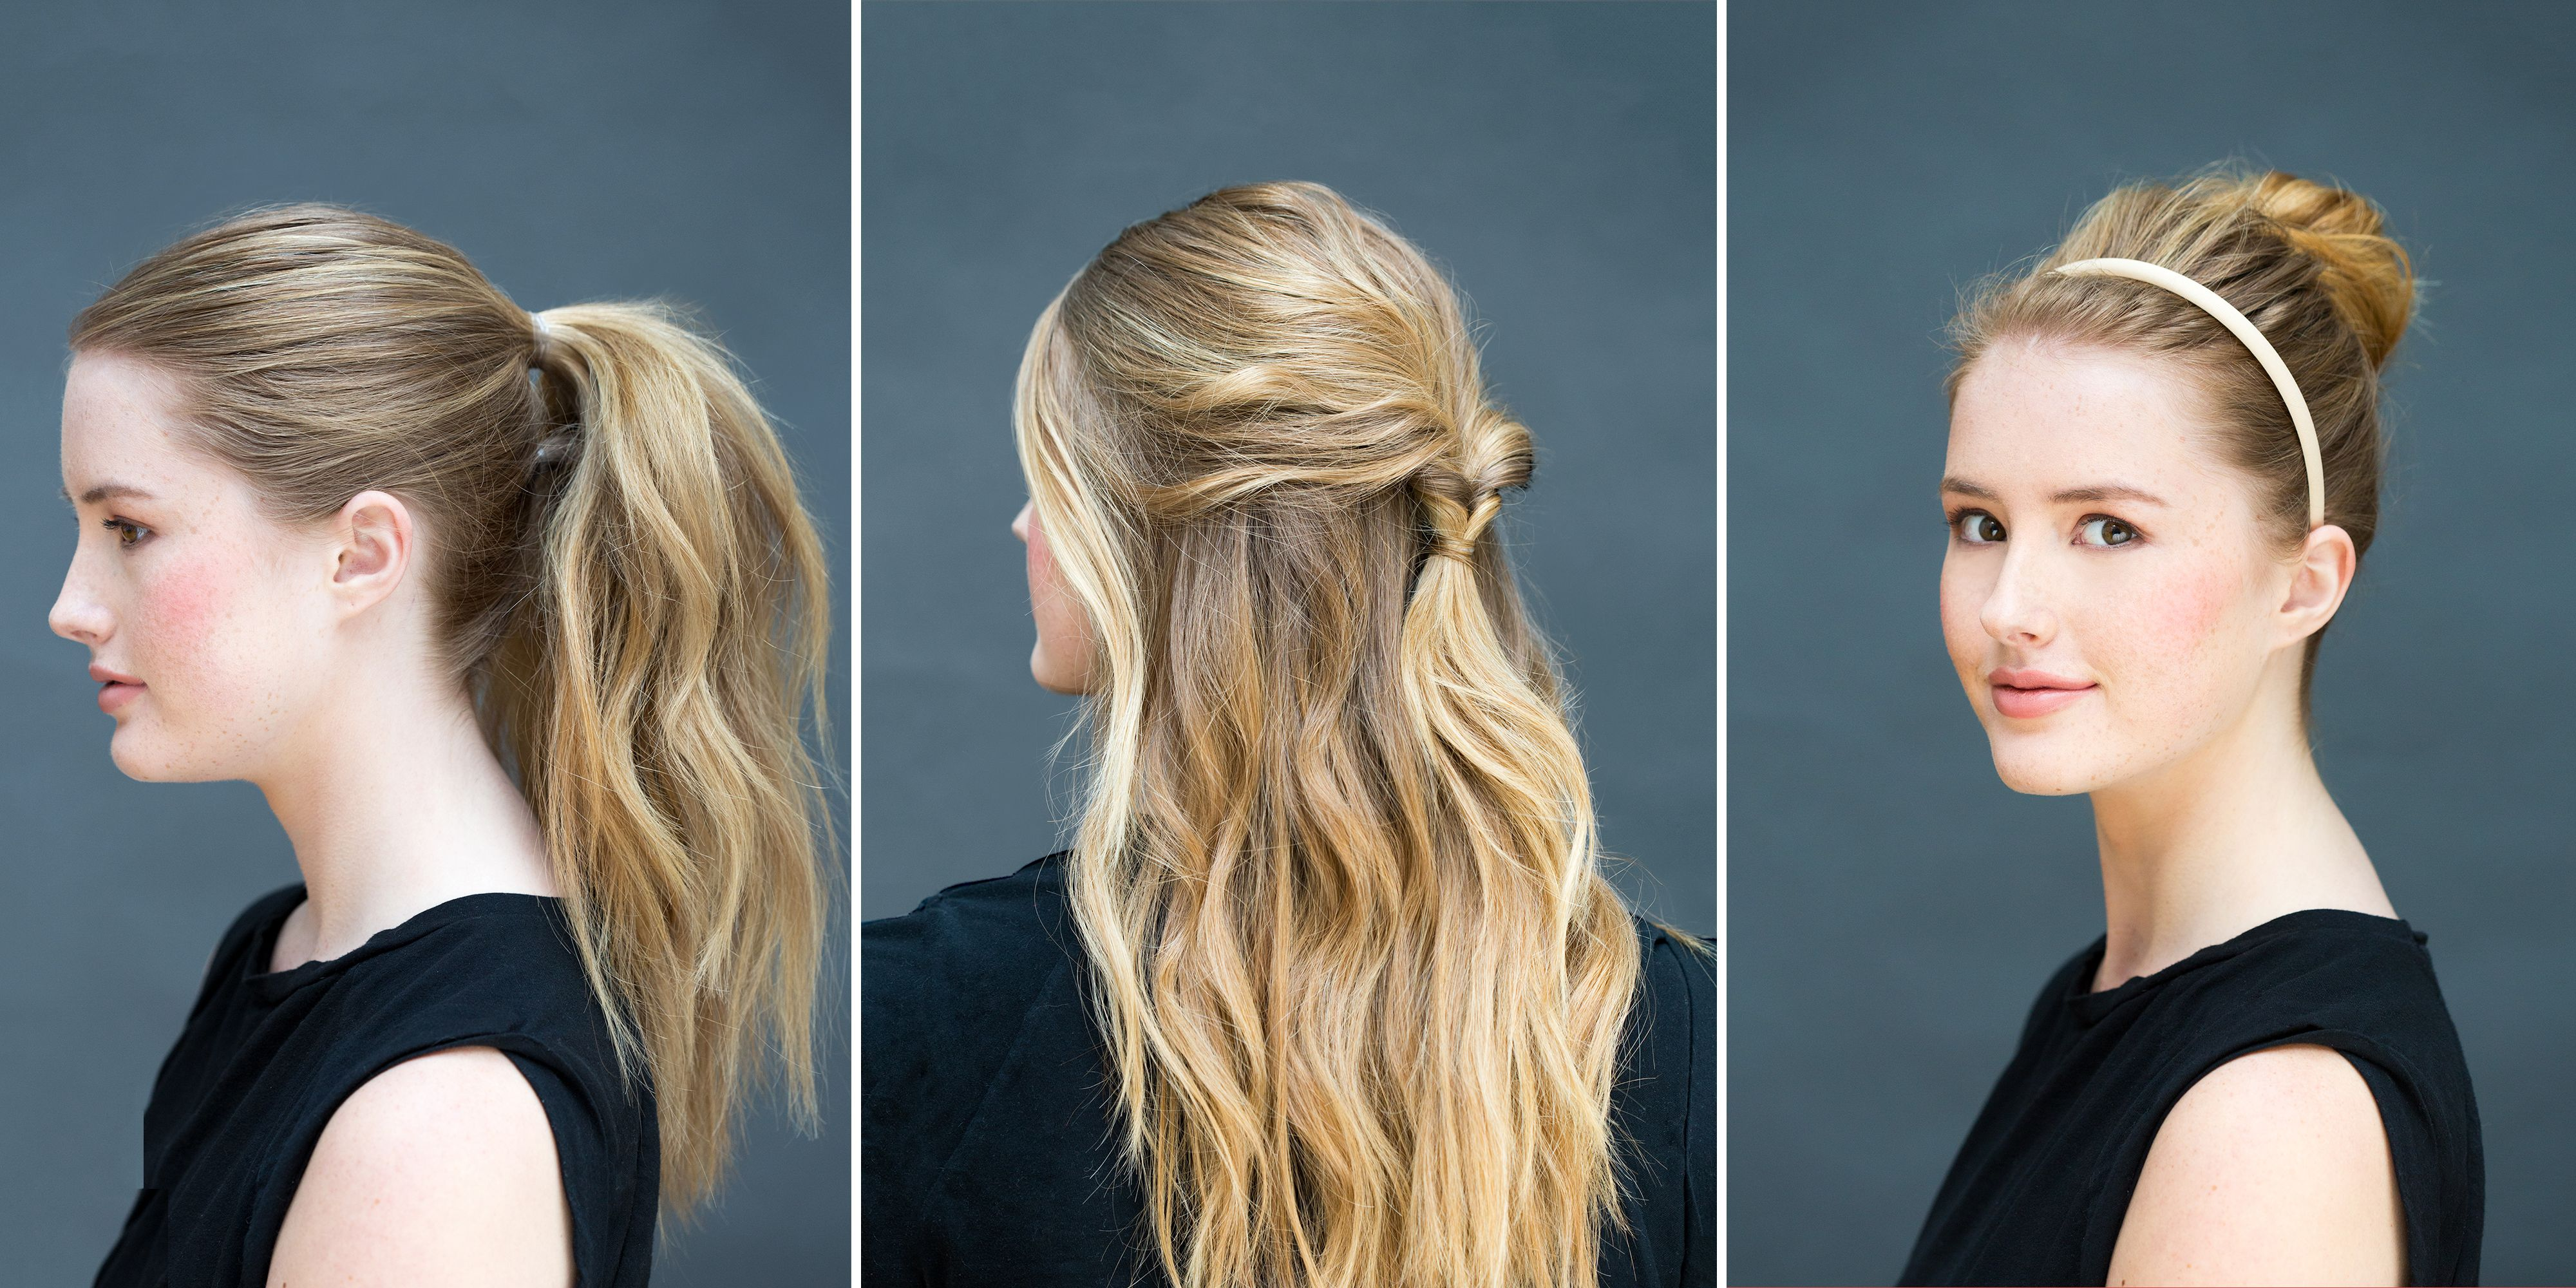 20 Quick and Easy Work Appropriate Hairstyles recommendations